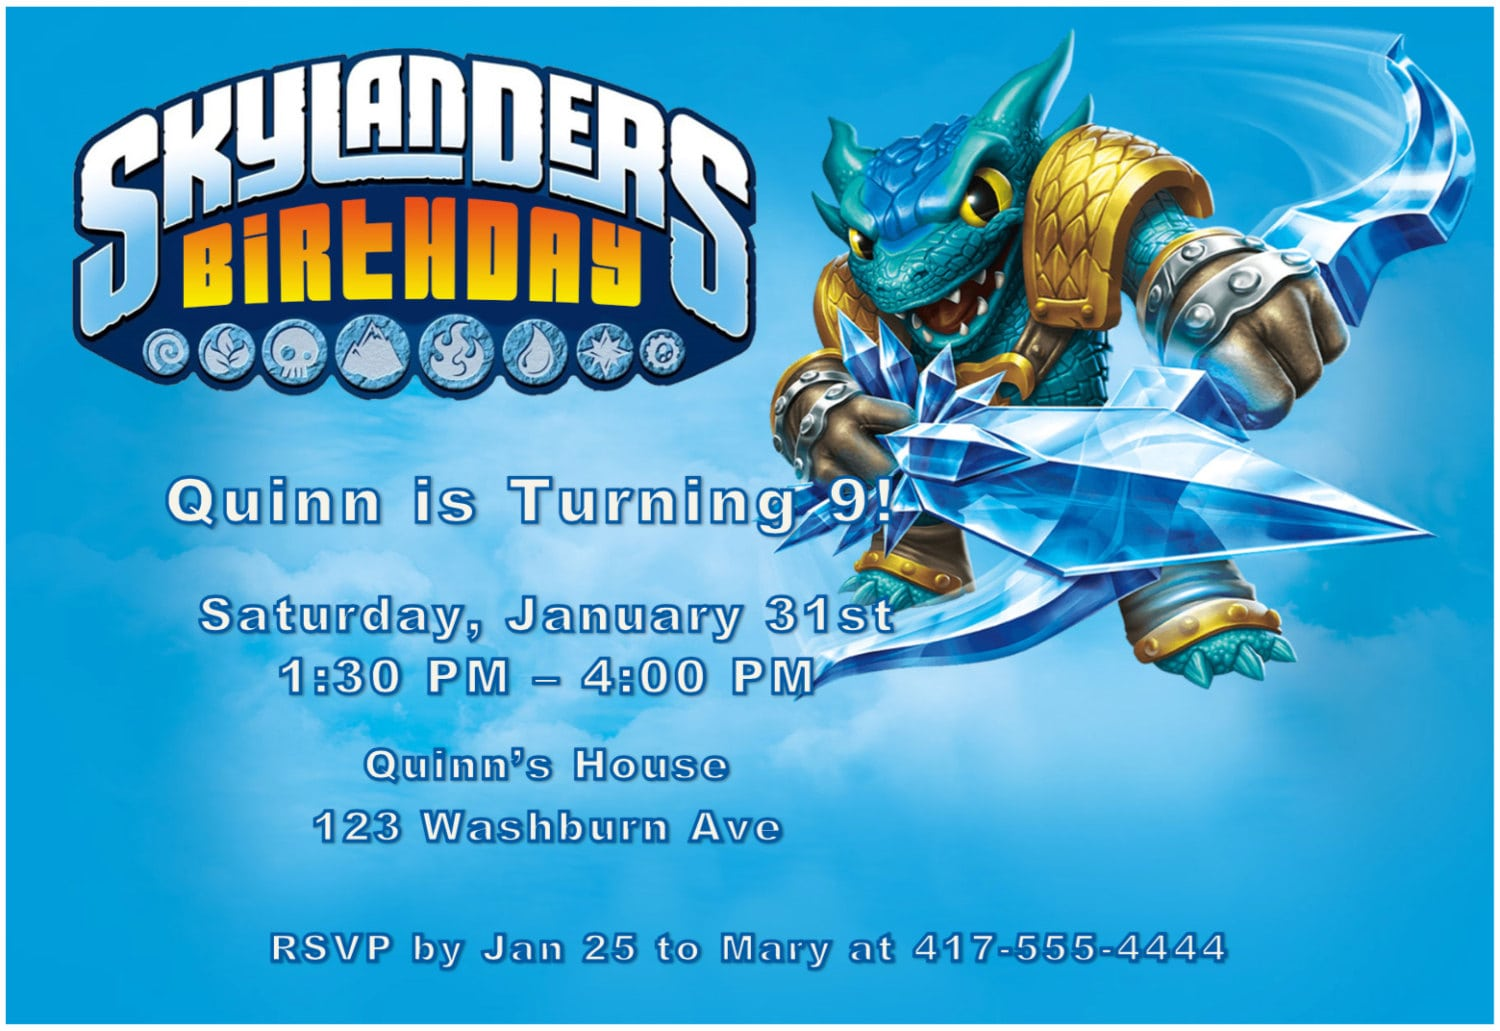 Skylander Invitations is adorable invitations layout